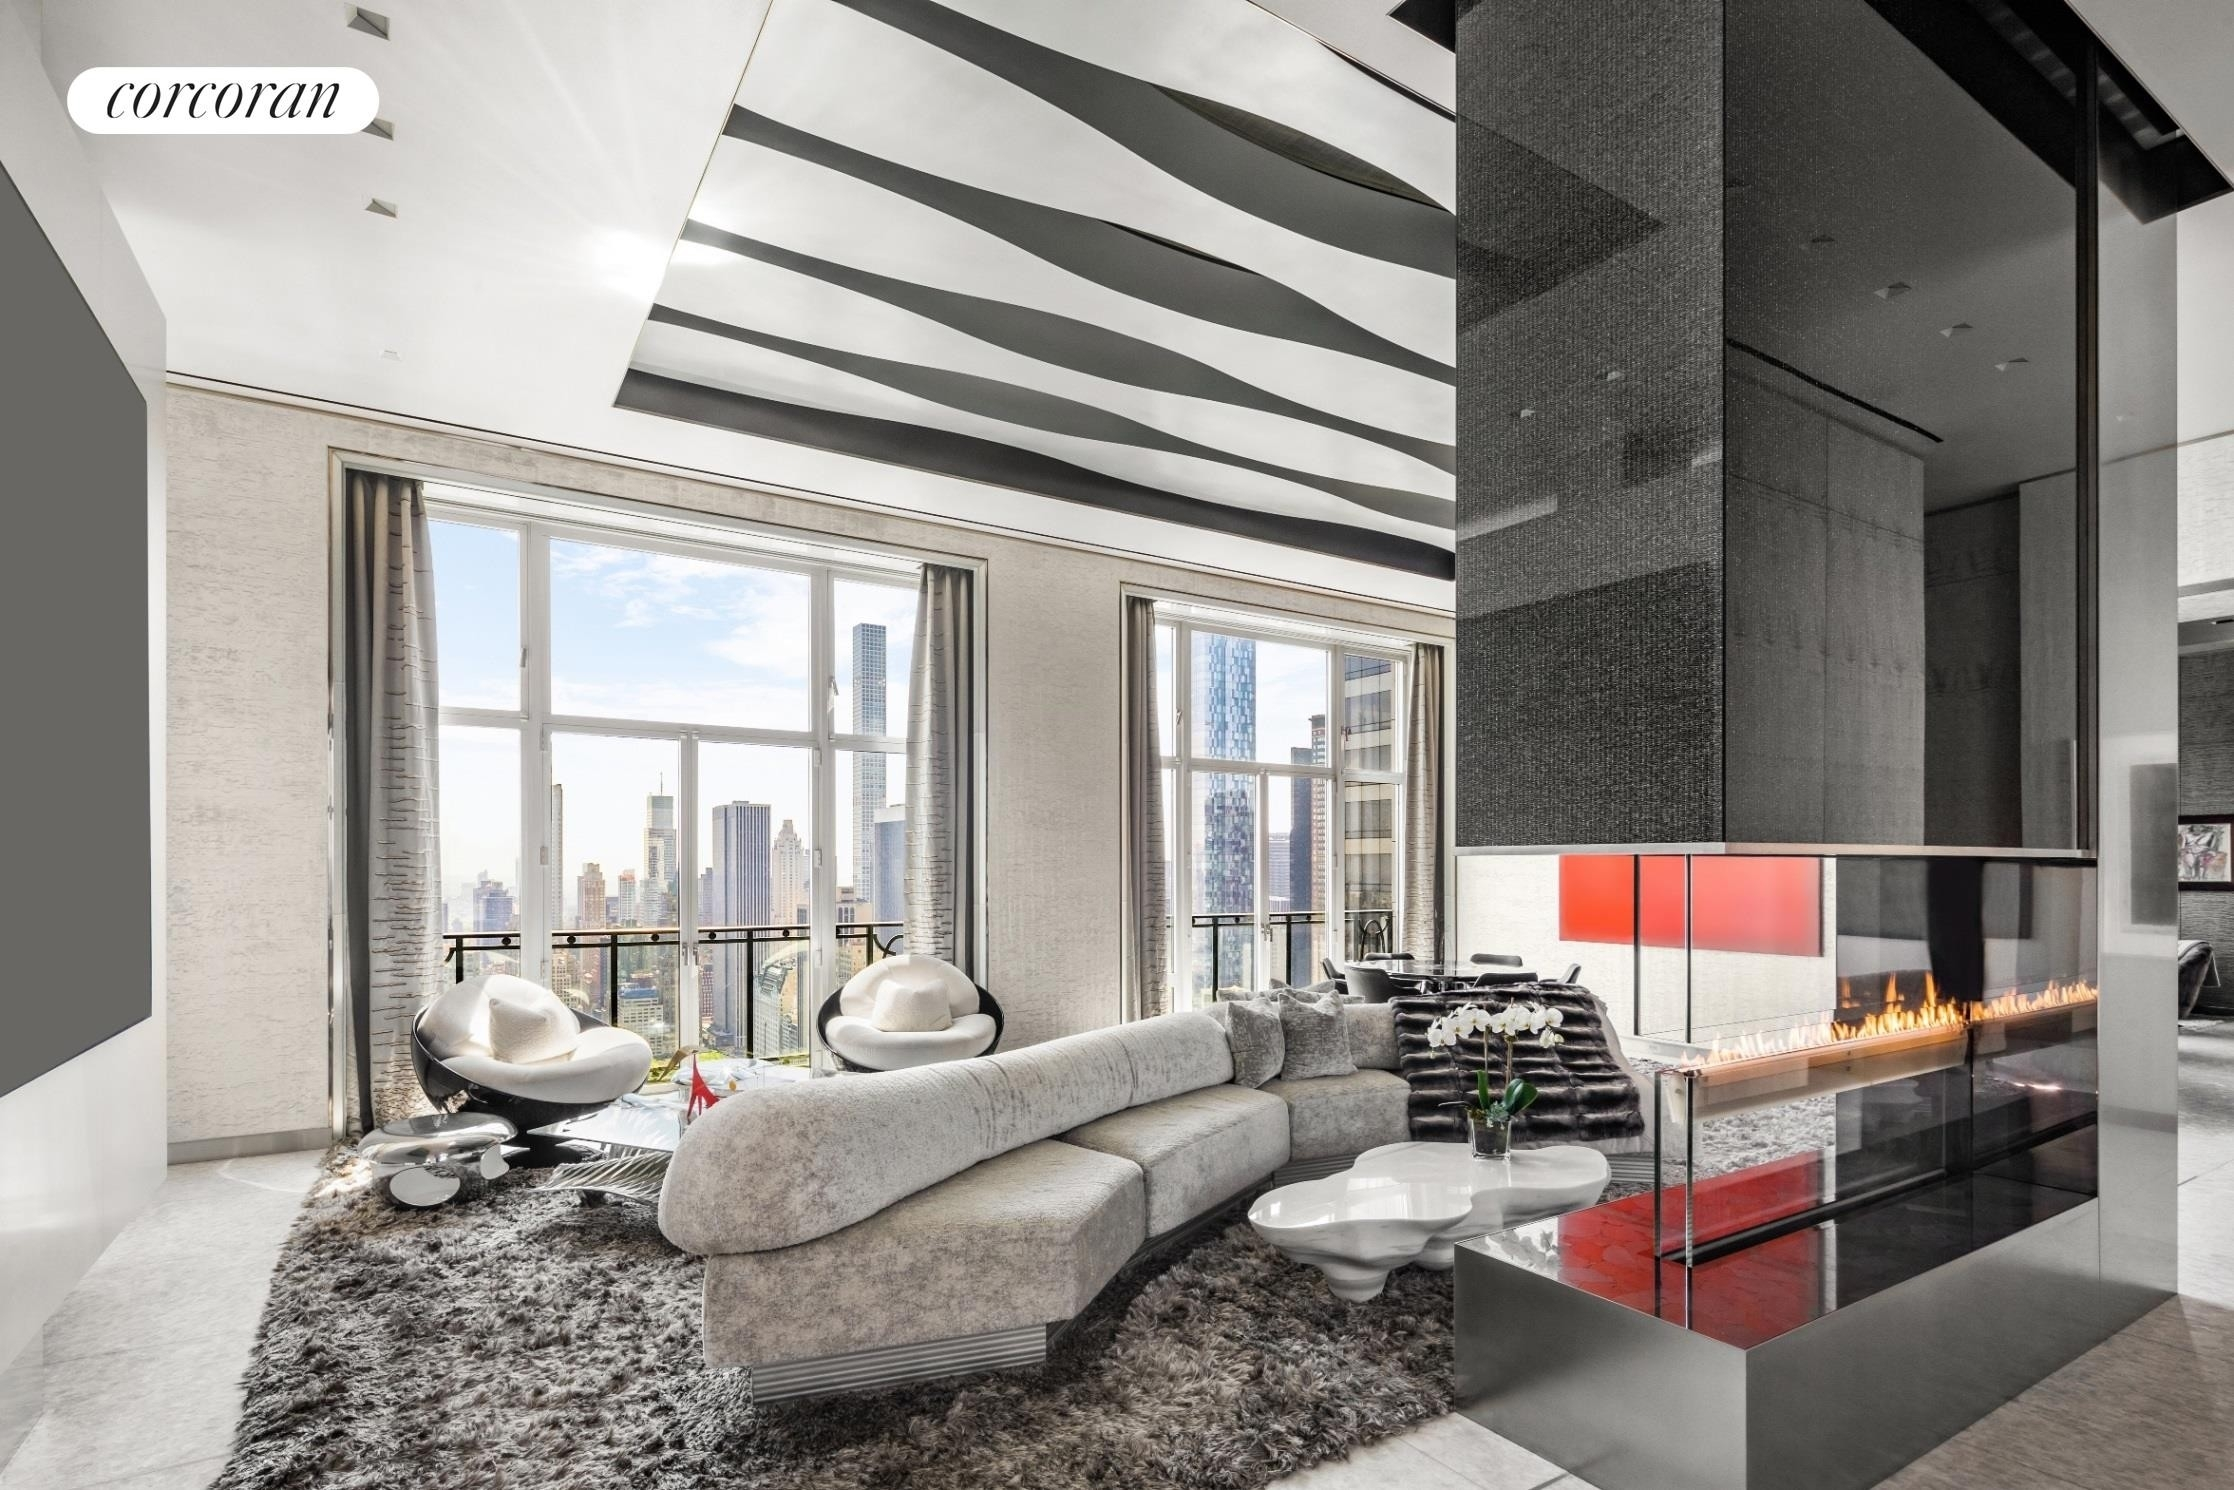 2. Condominiums for Sale at 15 Central Park West, PH43 Lincoln Square, New York, NY 10023